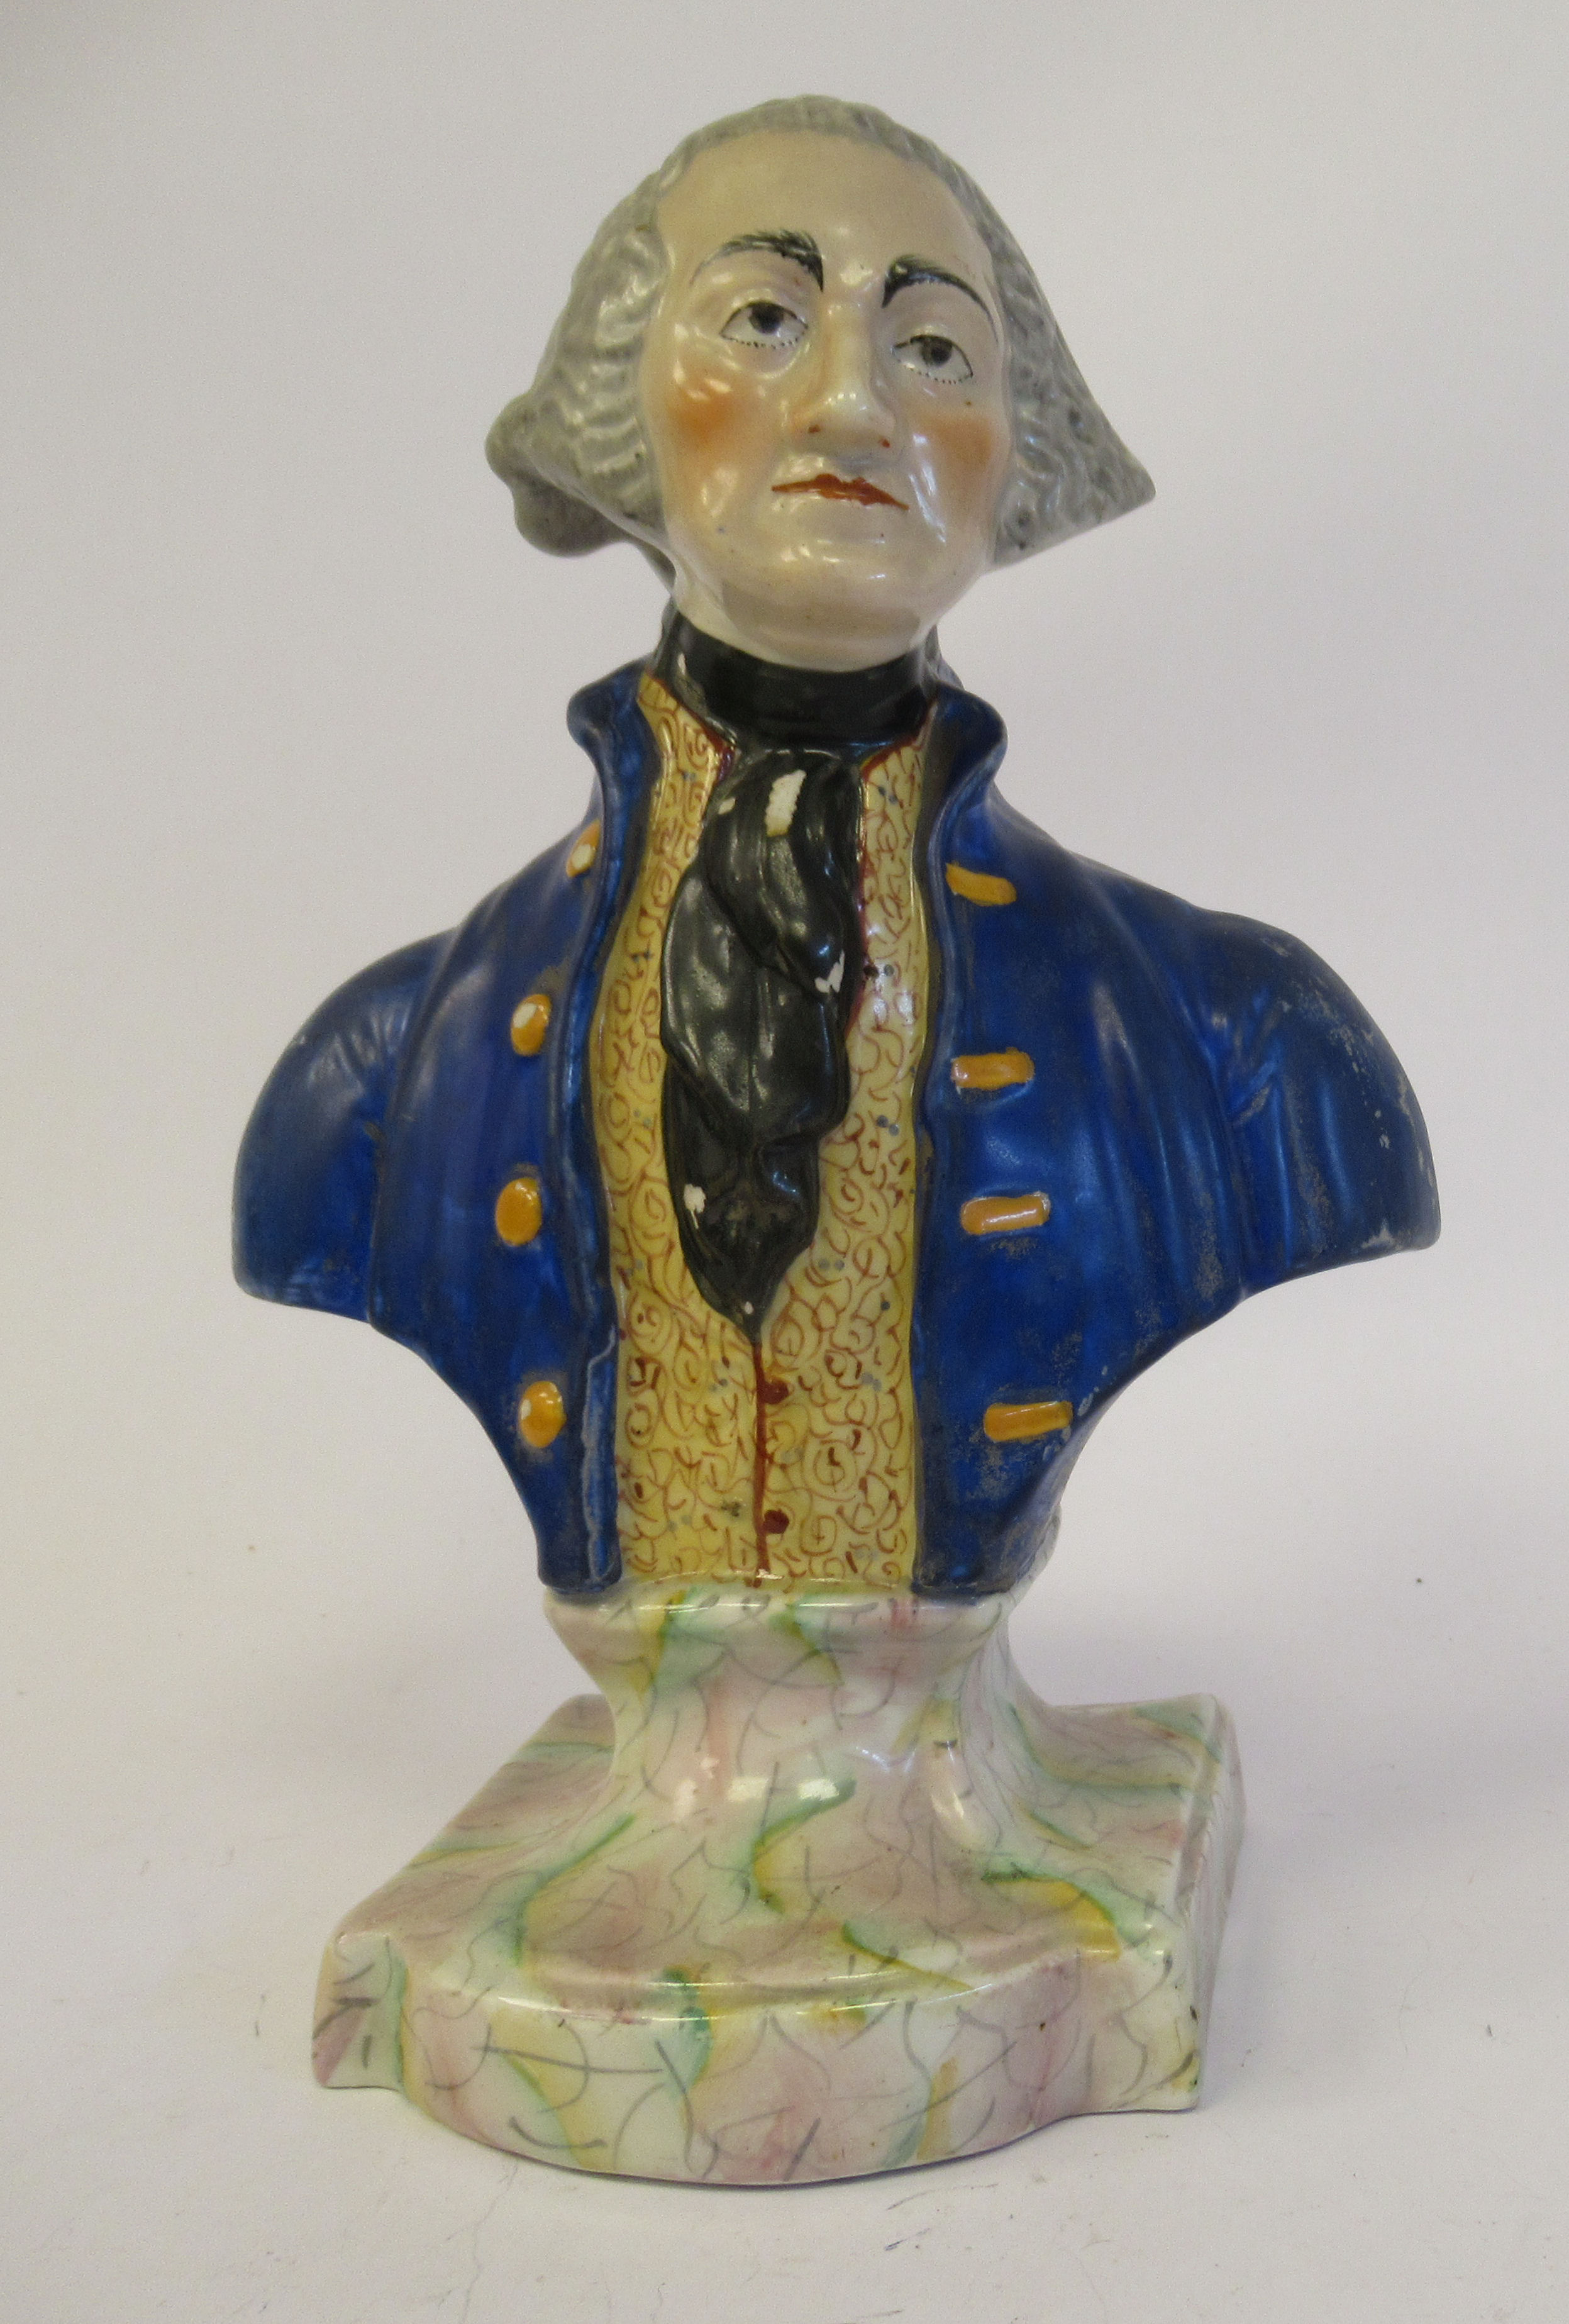 A 19thC Staffordshire pottery bust, featuring a bewigged gentleman, wearing a coat and cravat, on an